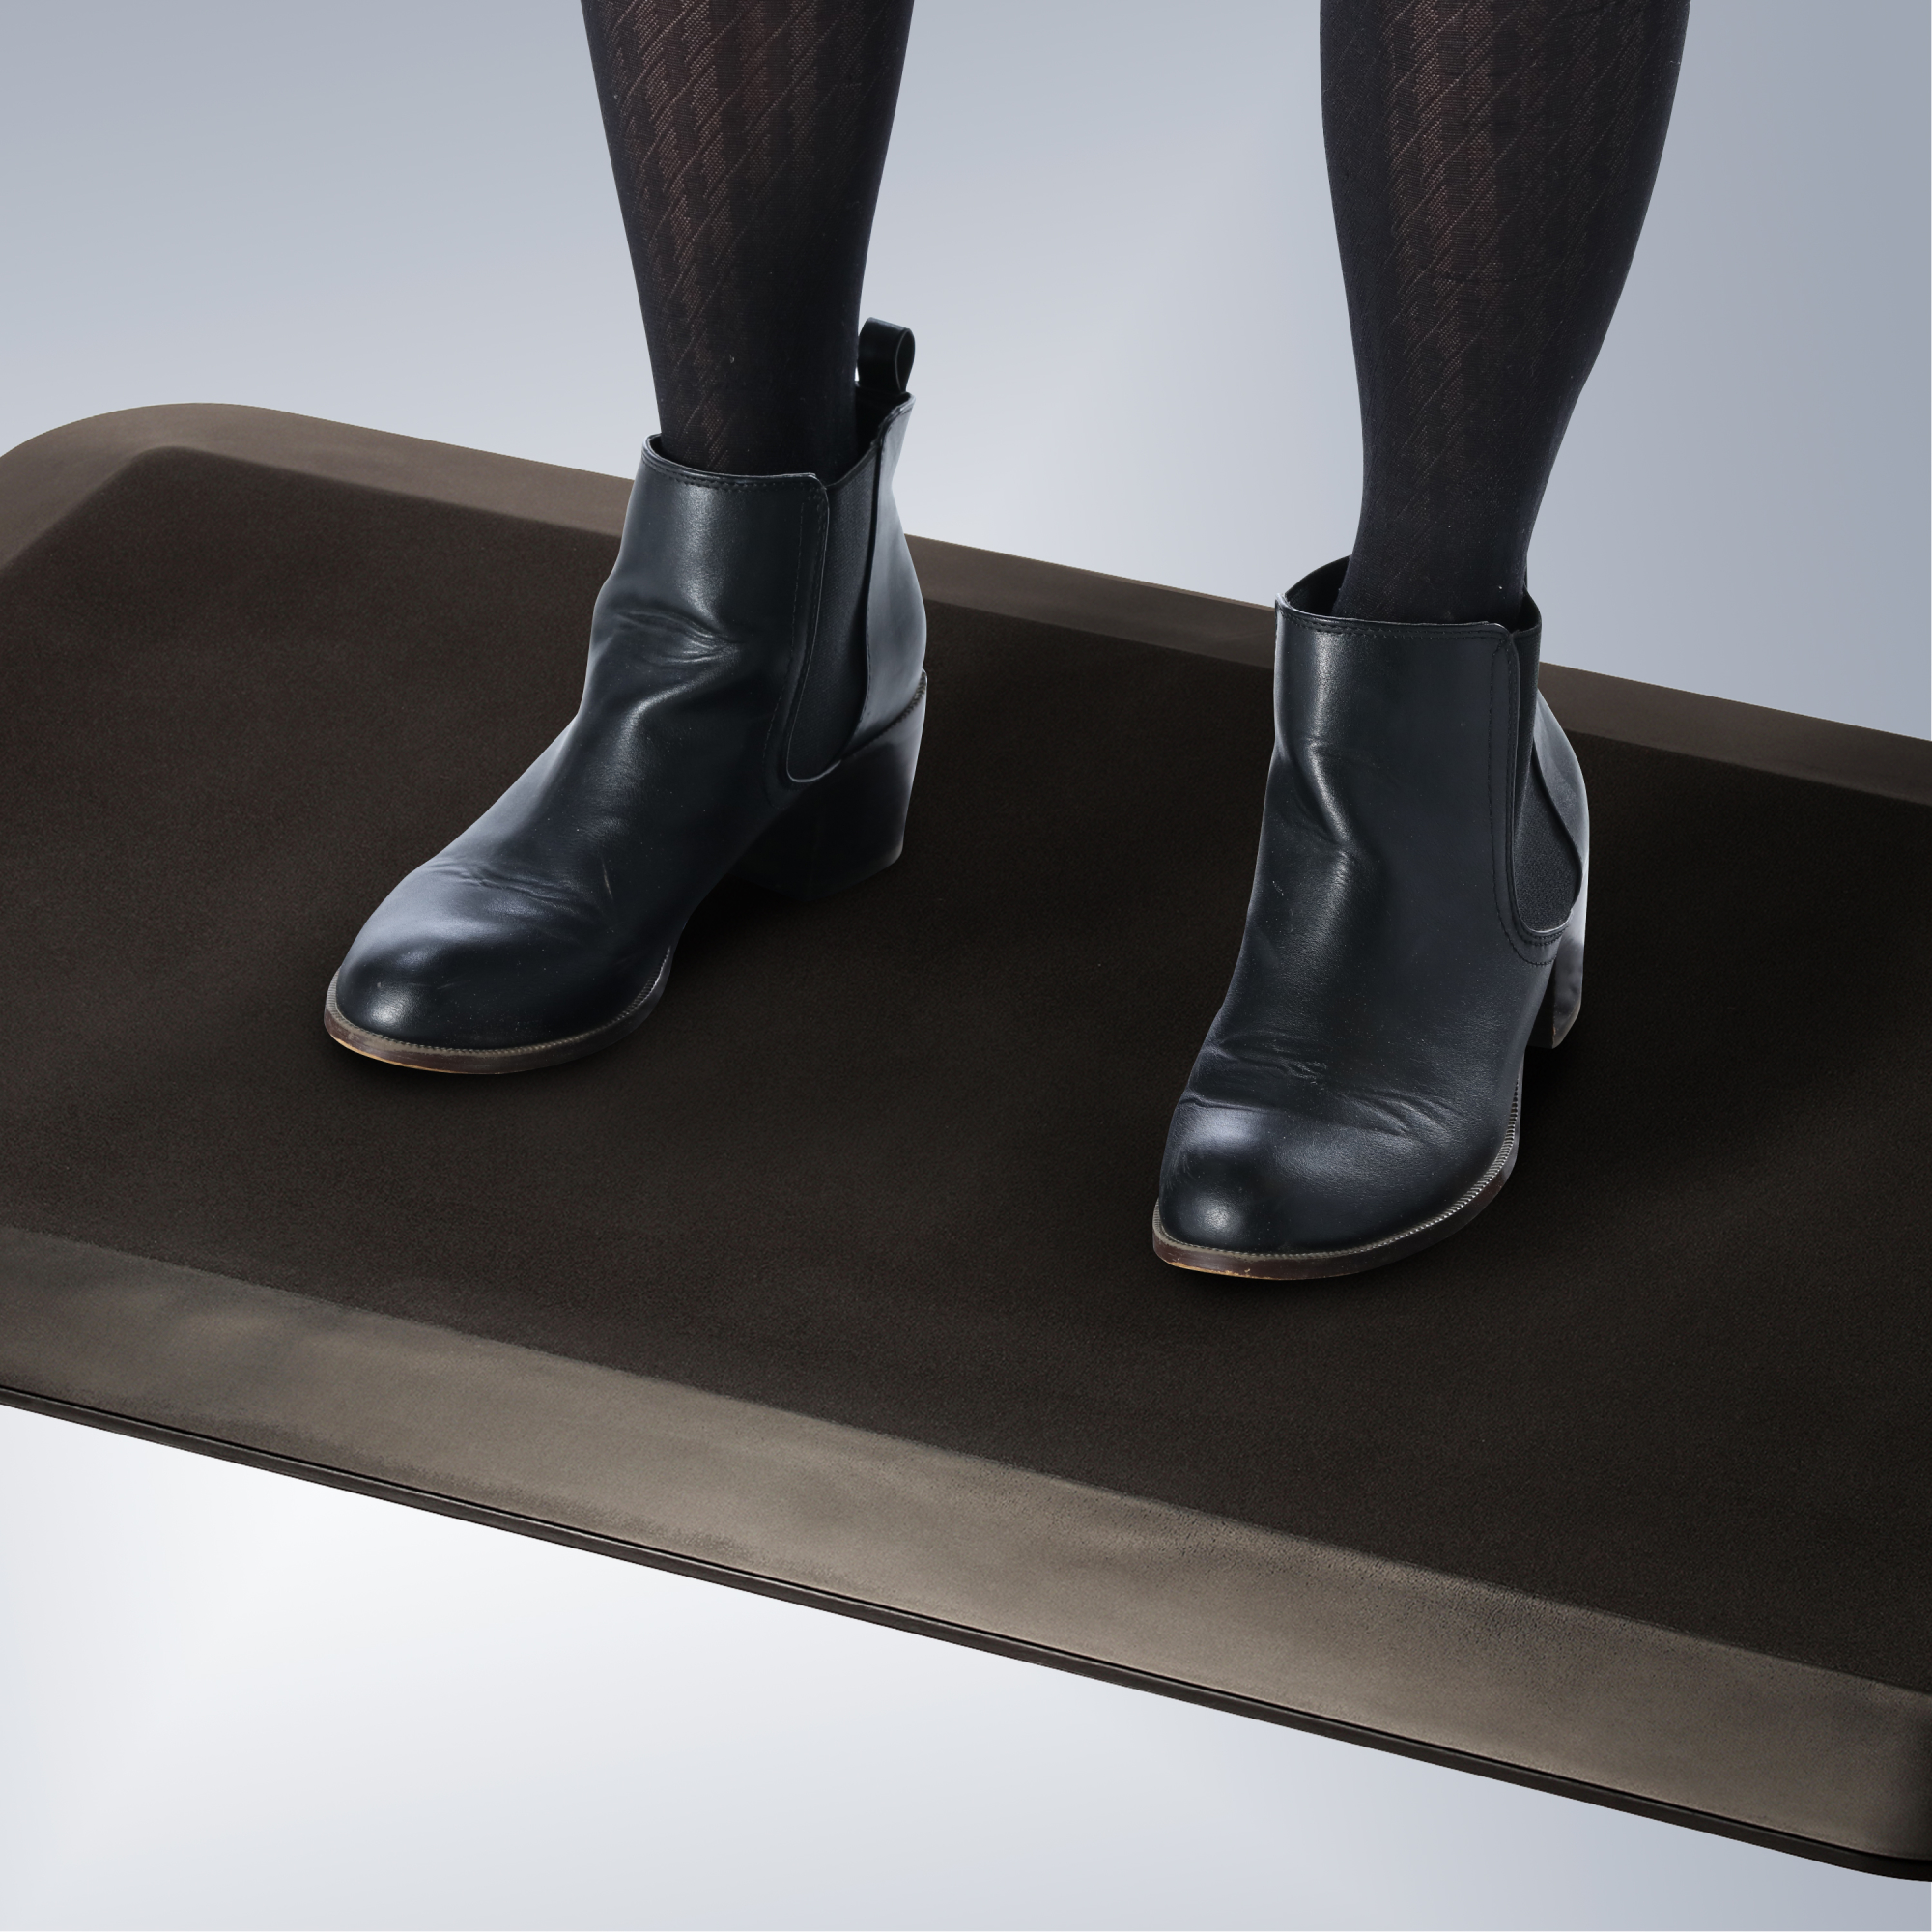 Image for Cushioned Floor Mat from SmartMoves